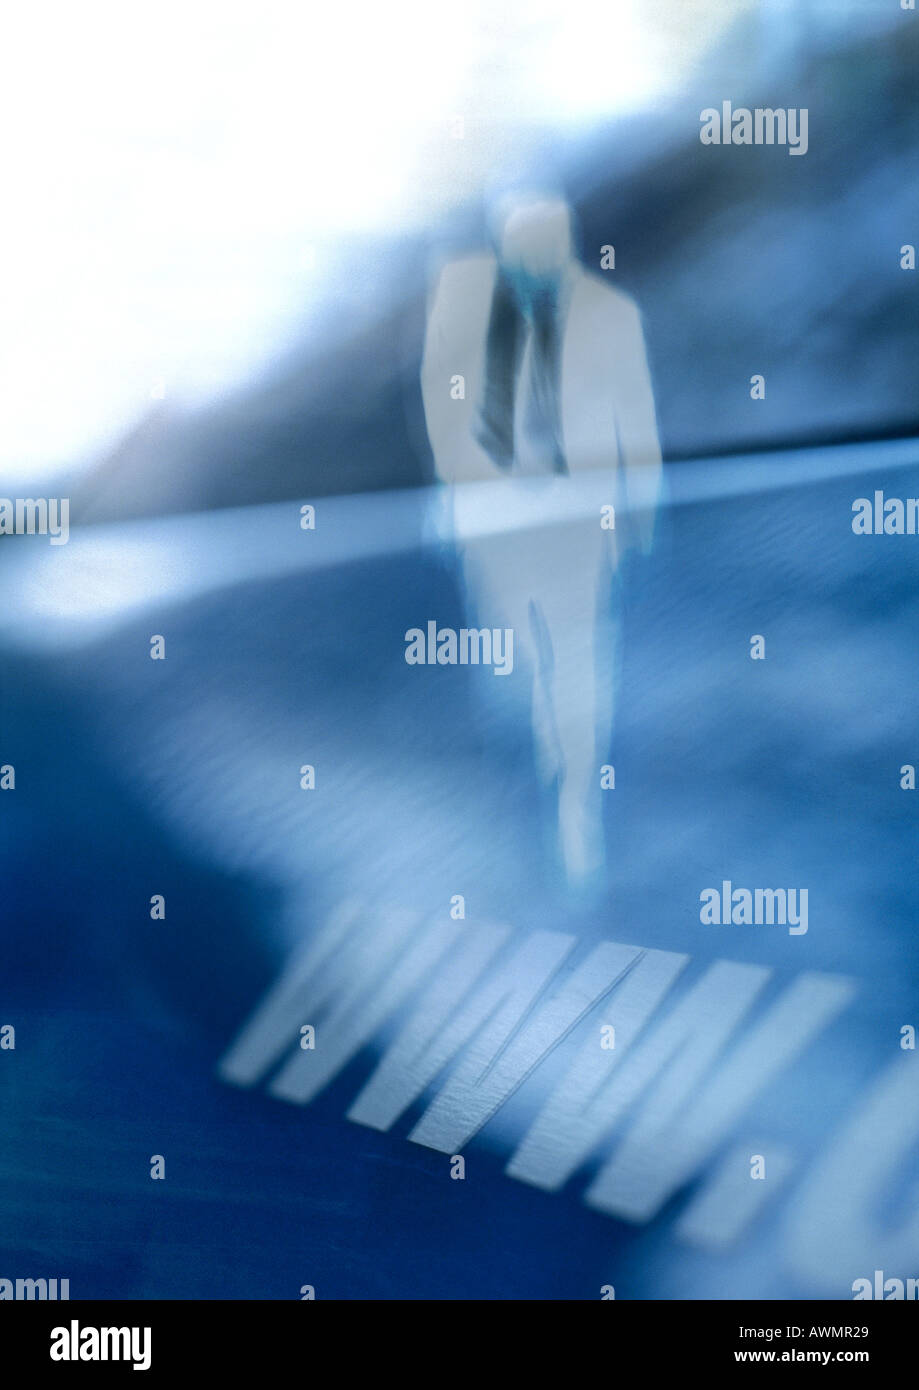 WWW symbol and male figure, composite, close-up - Stock Image